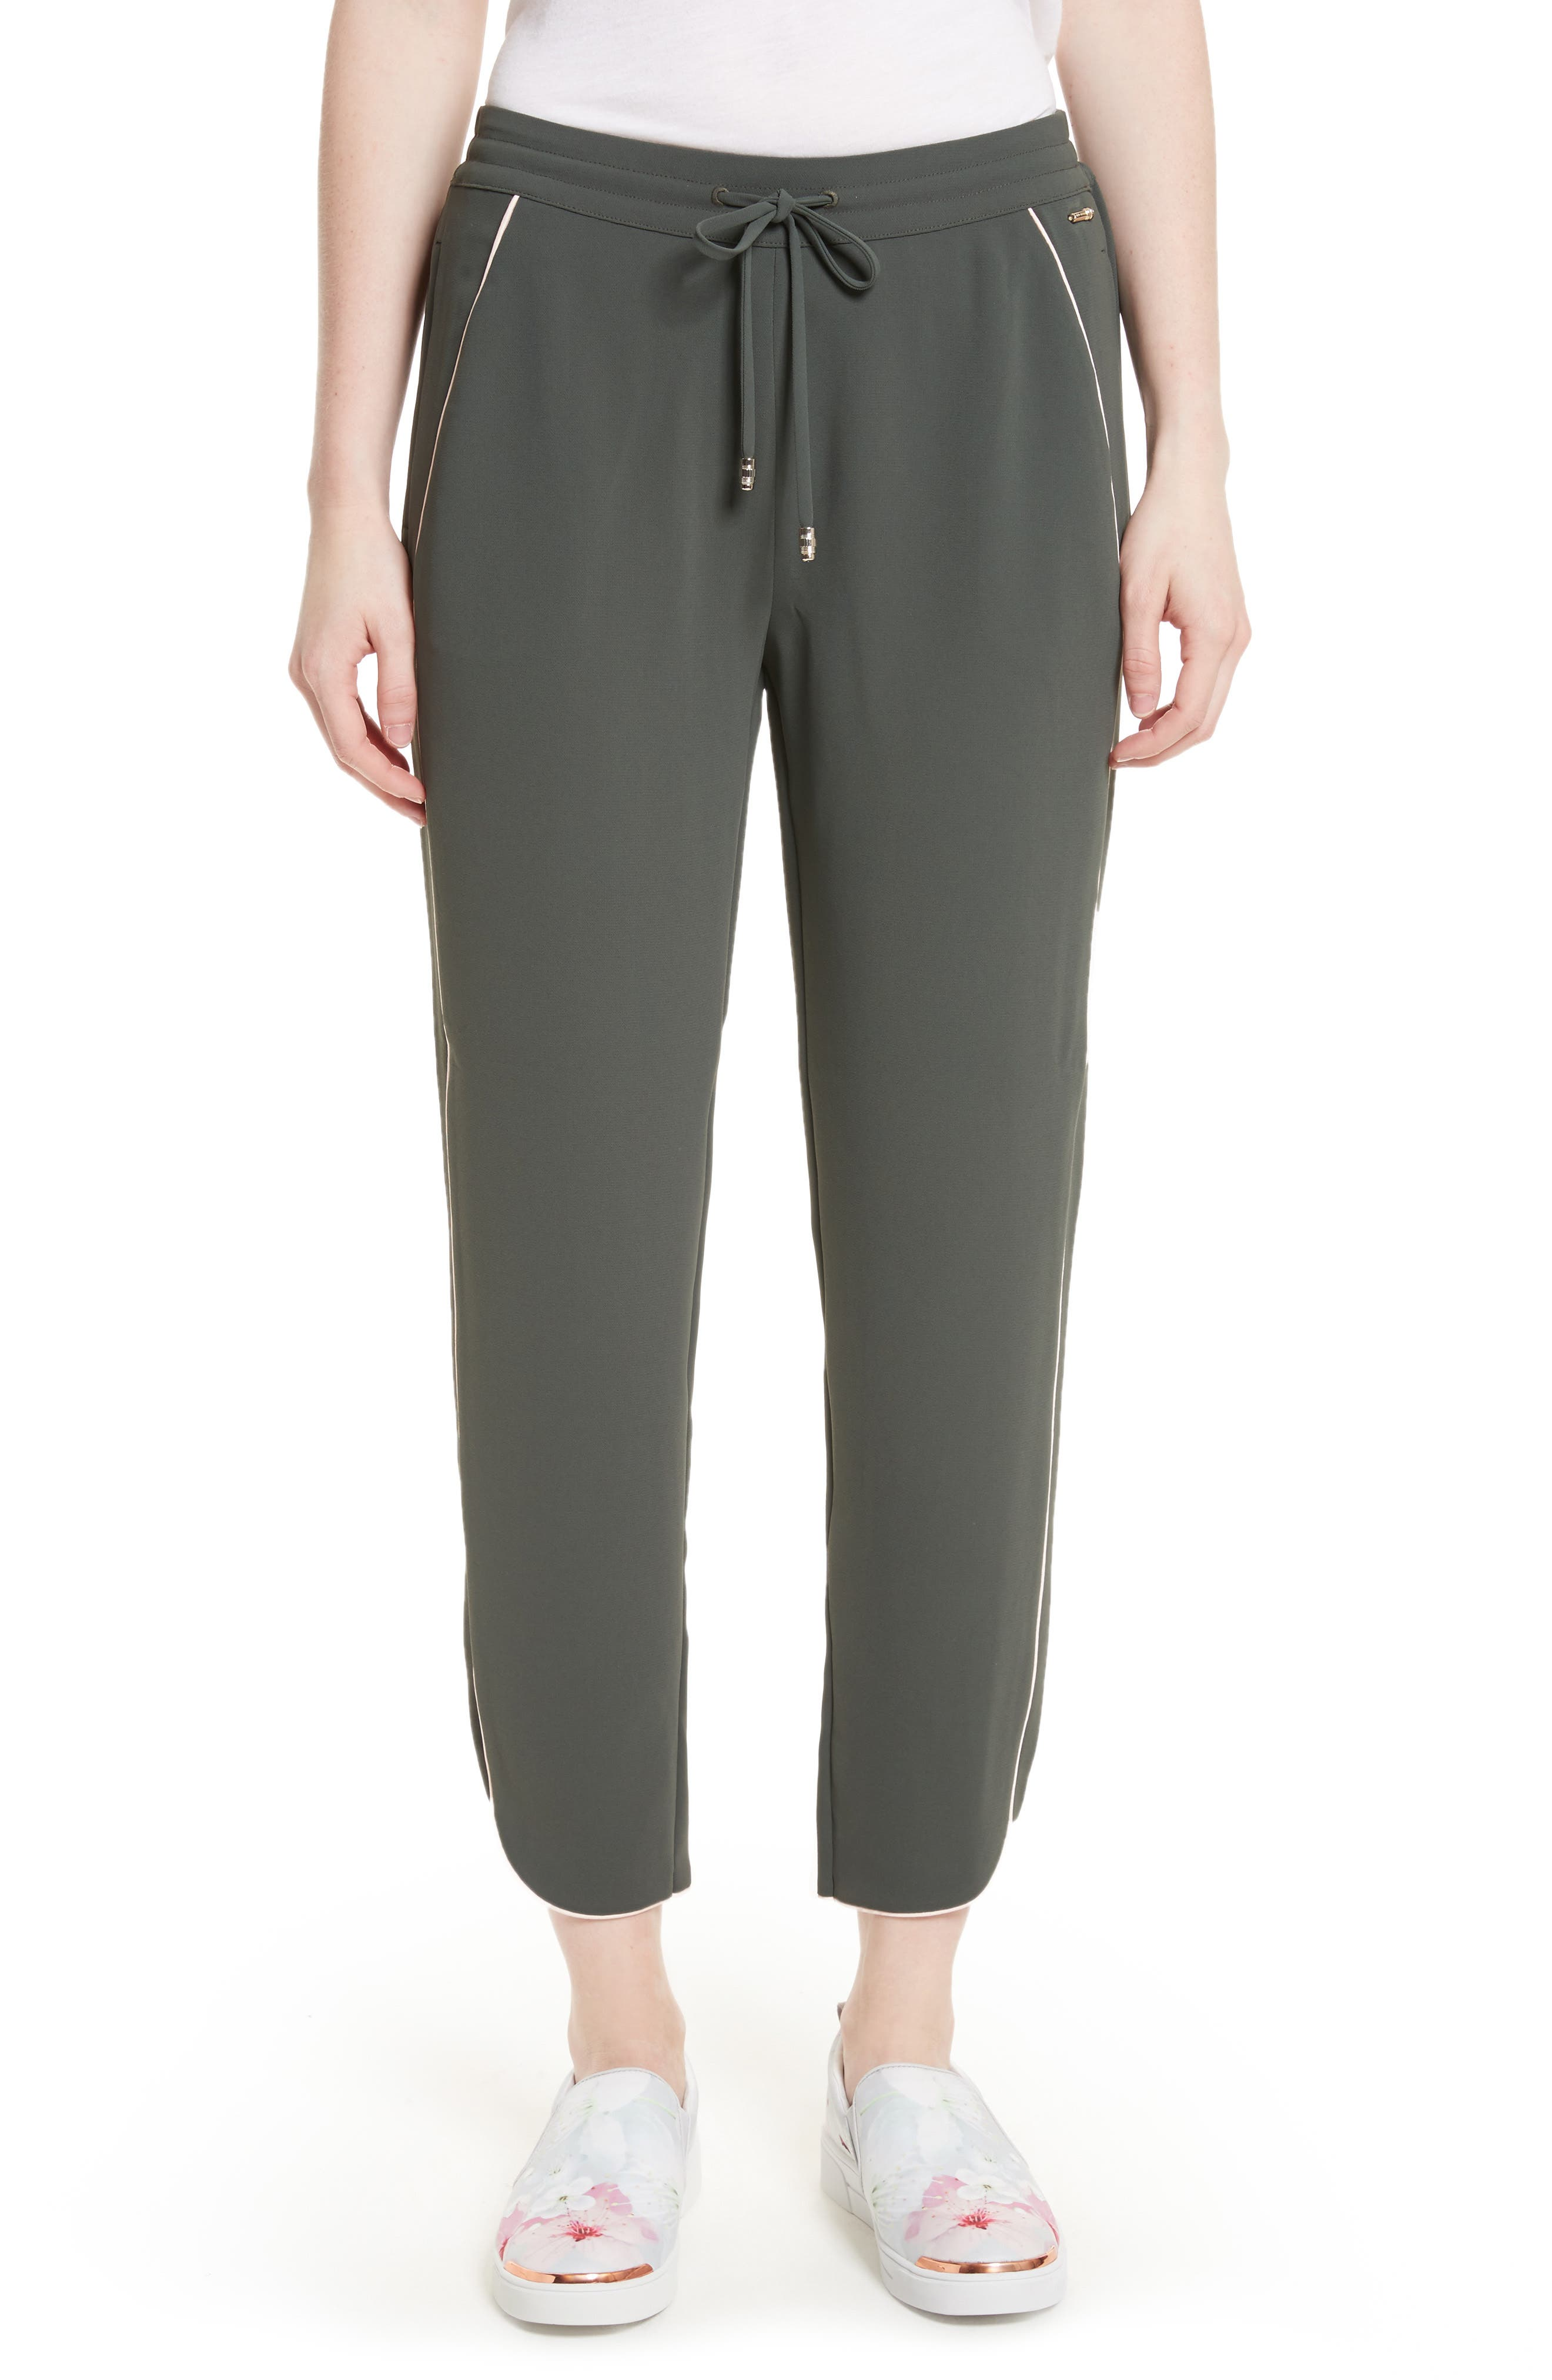 Quenbie Piped Jogger Pants,                         Main,                         color, 311